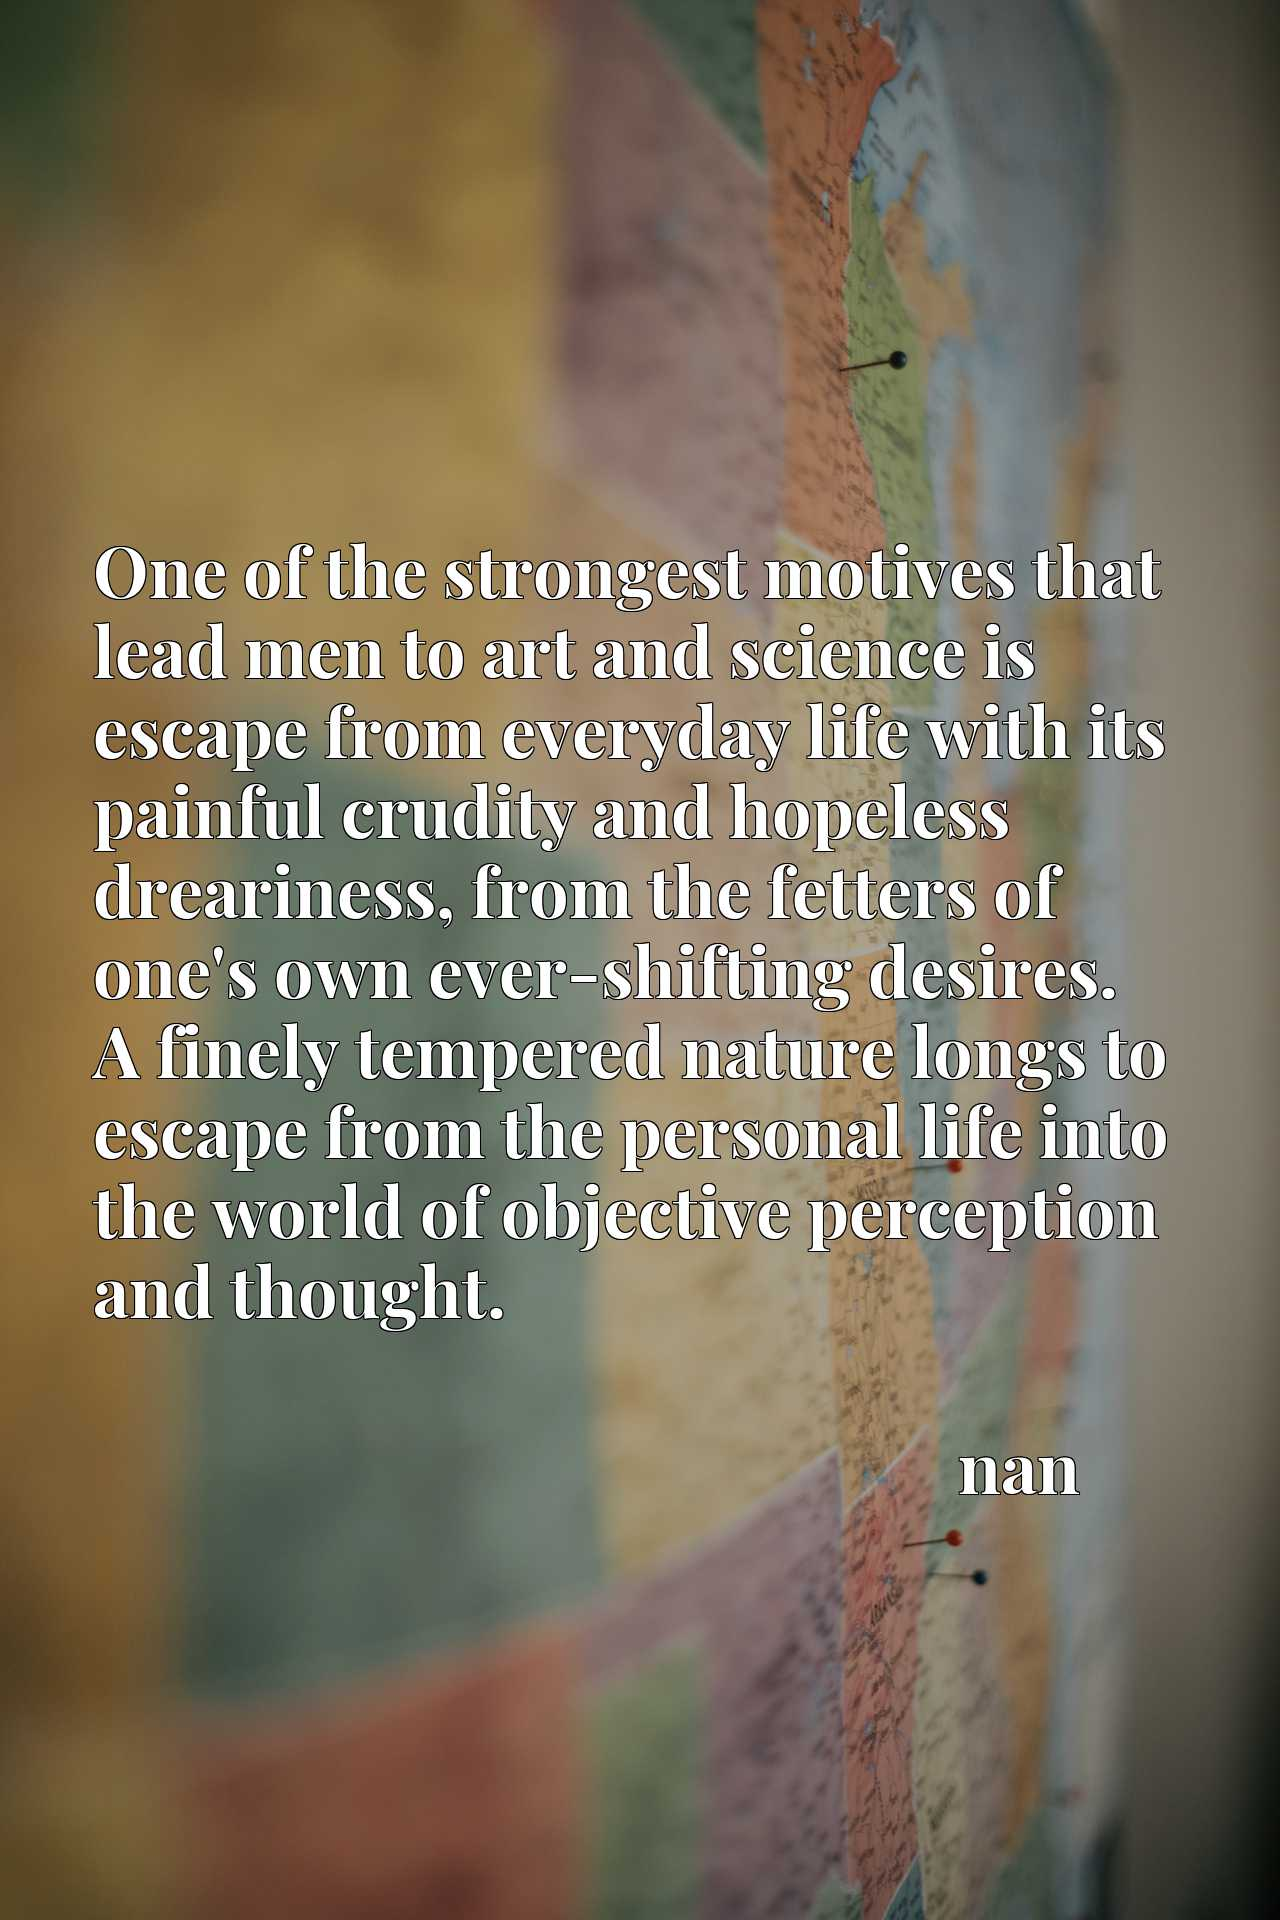 One of the strongest motives that lead men to art and science is escape from everyday life with its painful crudity and hopeless dreariness, from the fetters of one's own ever-shifting desires. A finely tempered nature longs to escape from the personal life into the world of objective perception and thought.